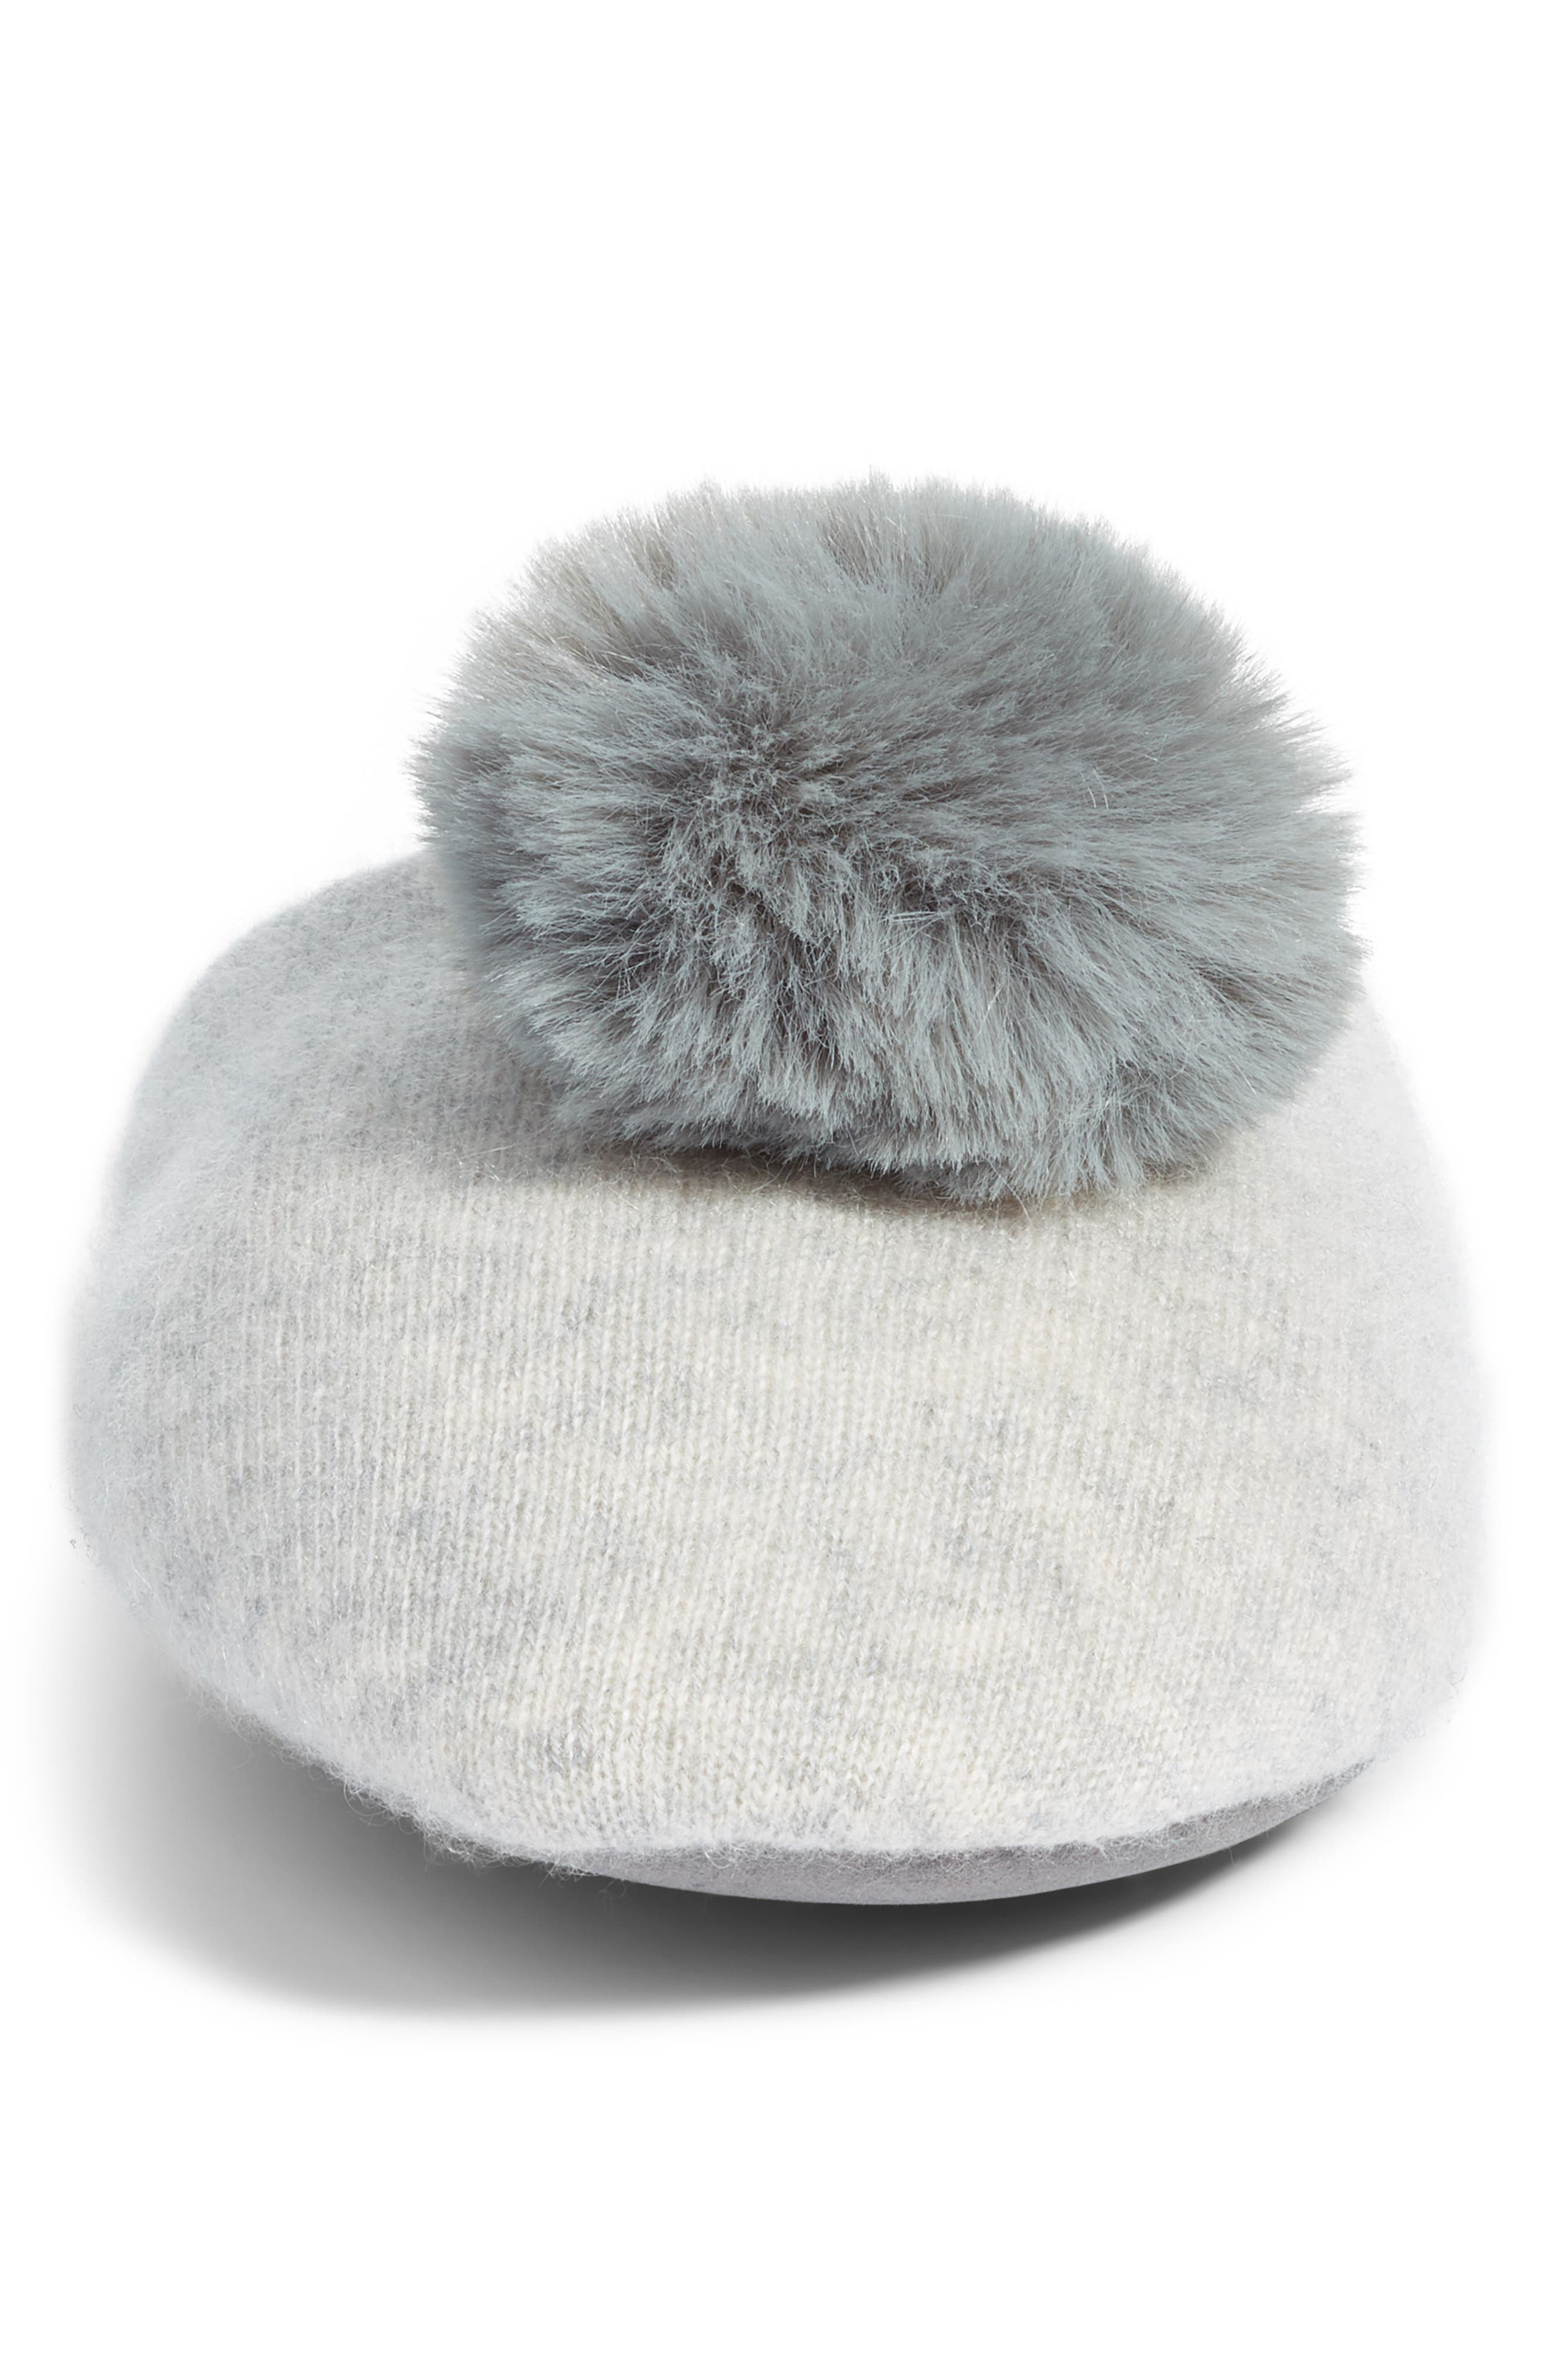 NORDSTROM,                             Wool & Cashmere Slippers with Faux Fur Pompom,                             Alternate thumbnail 4, color,                             GREY HEATHER